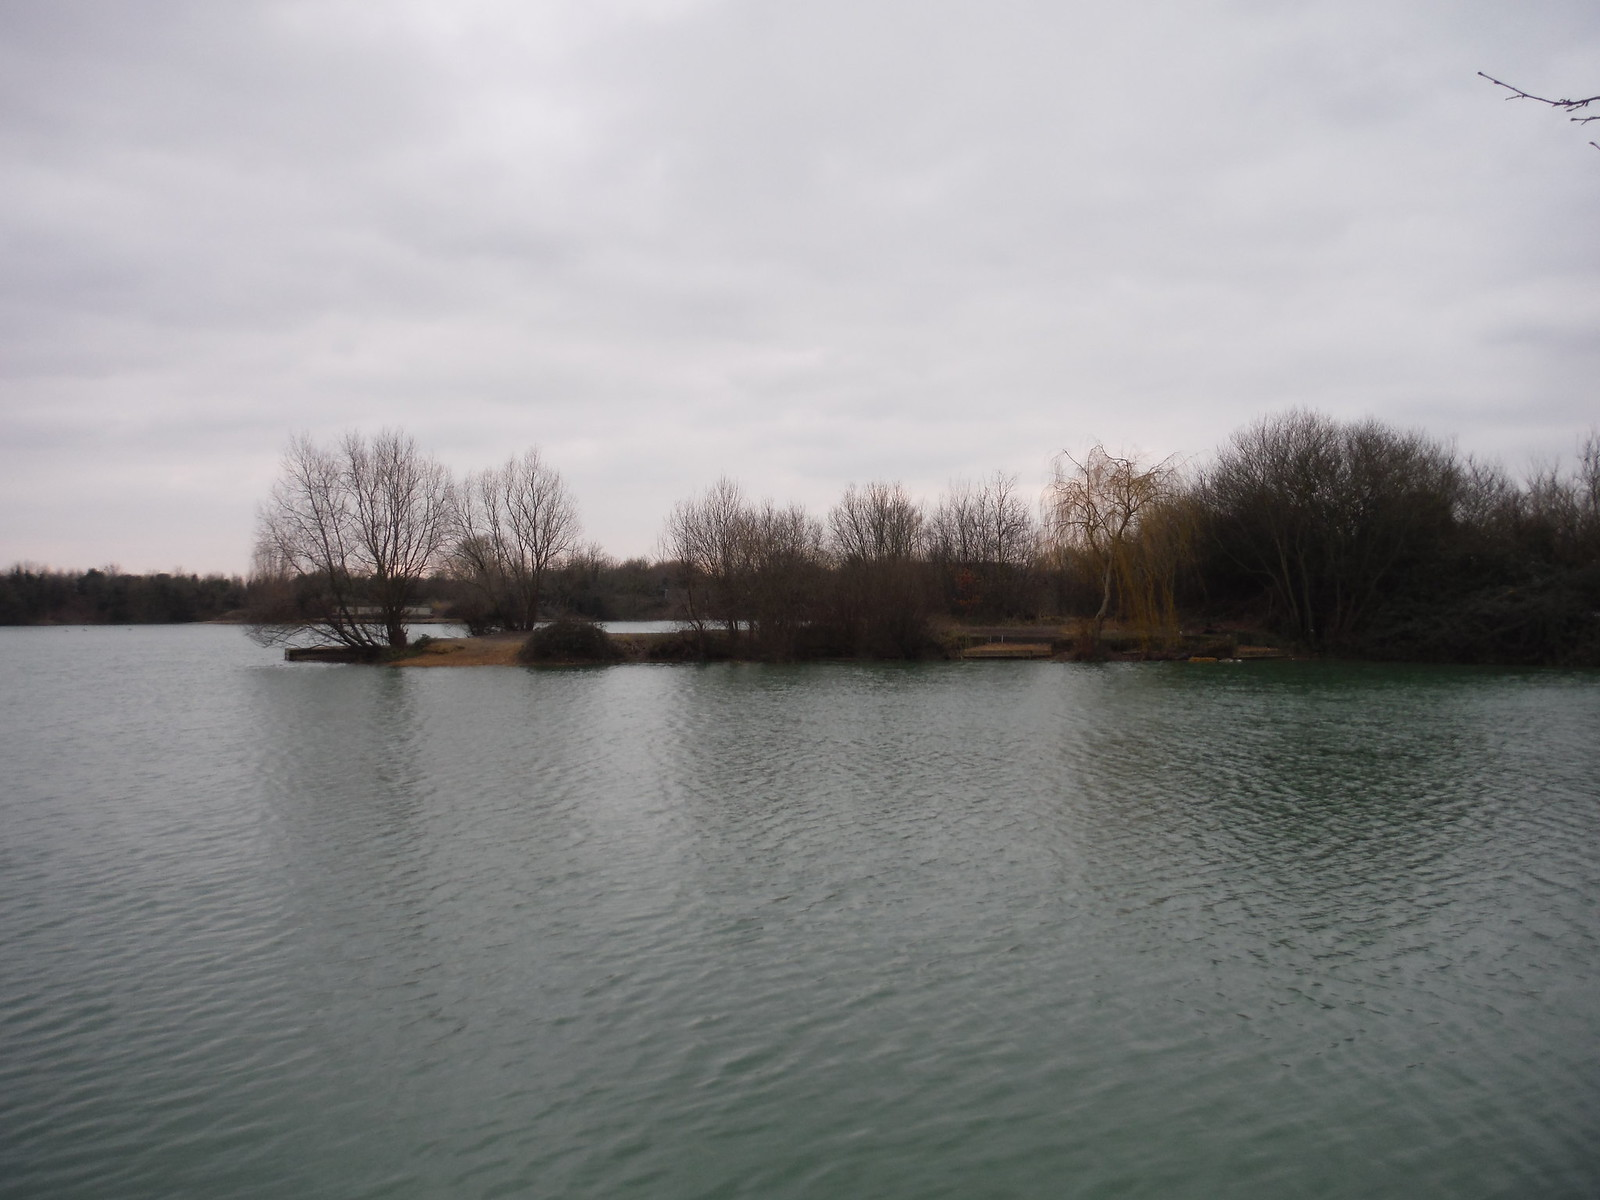 Promontory in Chase Waters, Eastbrookend Country Park SWC Short Walk 33 - Dagenham Parks, Rivers and Ponds